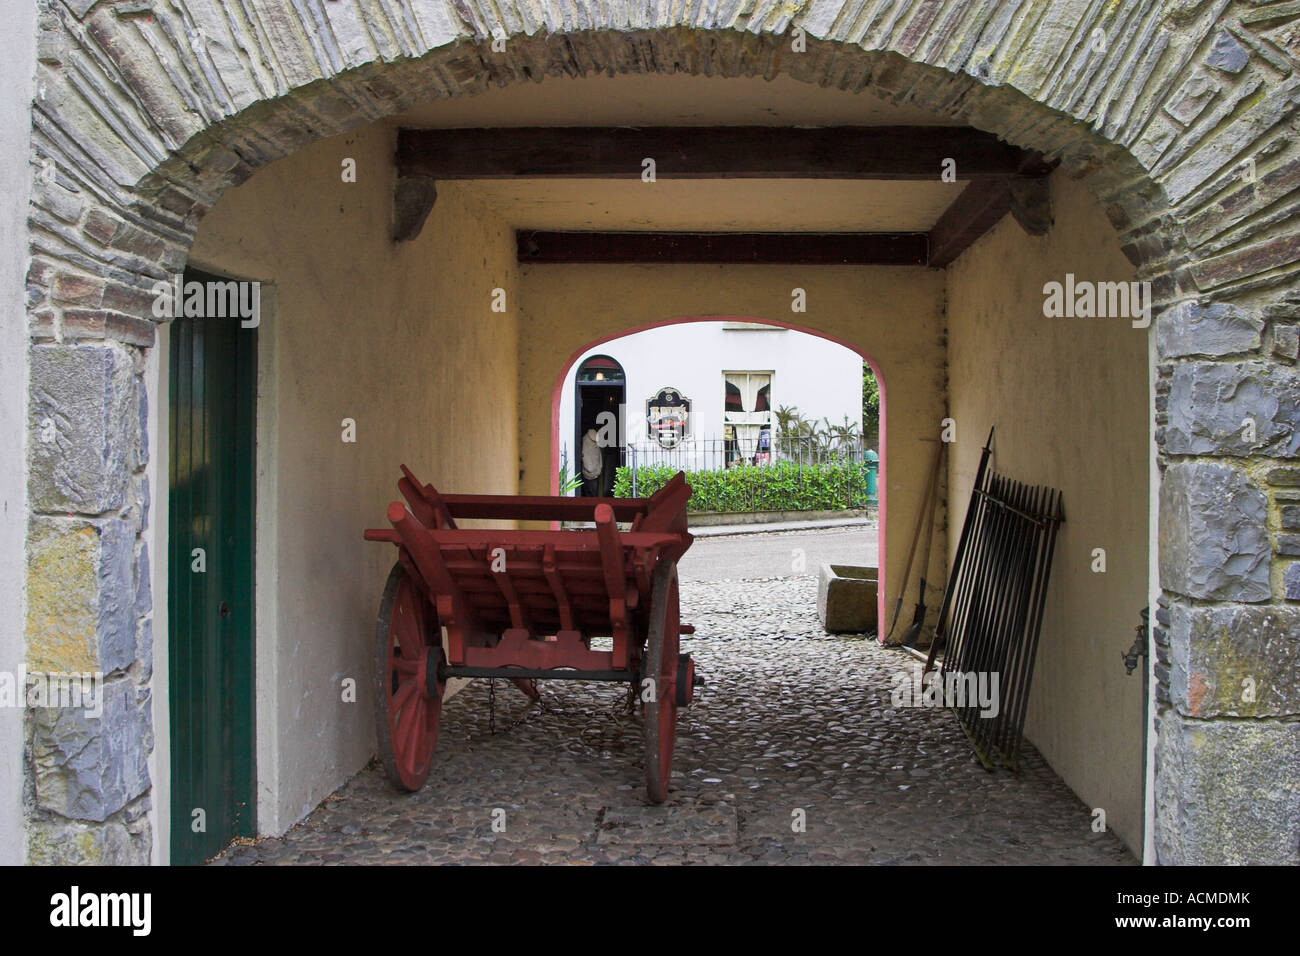 A covered alley with cart in Bunratty Folk Park Co Clare Ireland - Stock Image